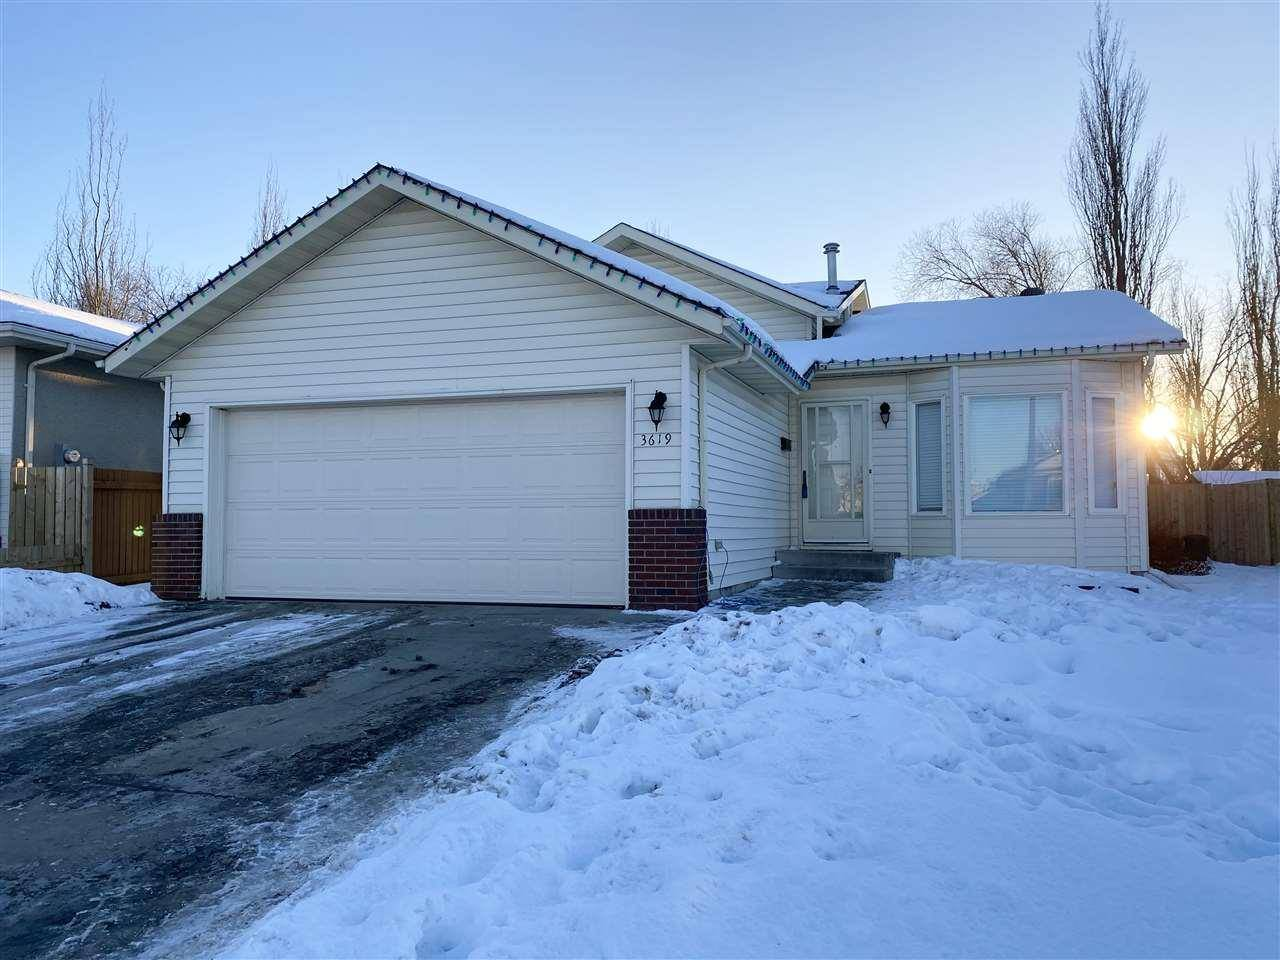 House for sale at 3619 146 Ave Nw Edmonton Alberta - MLS: E4186205